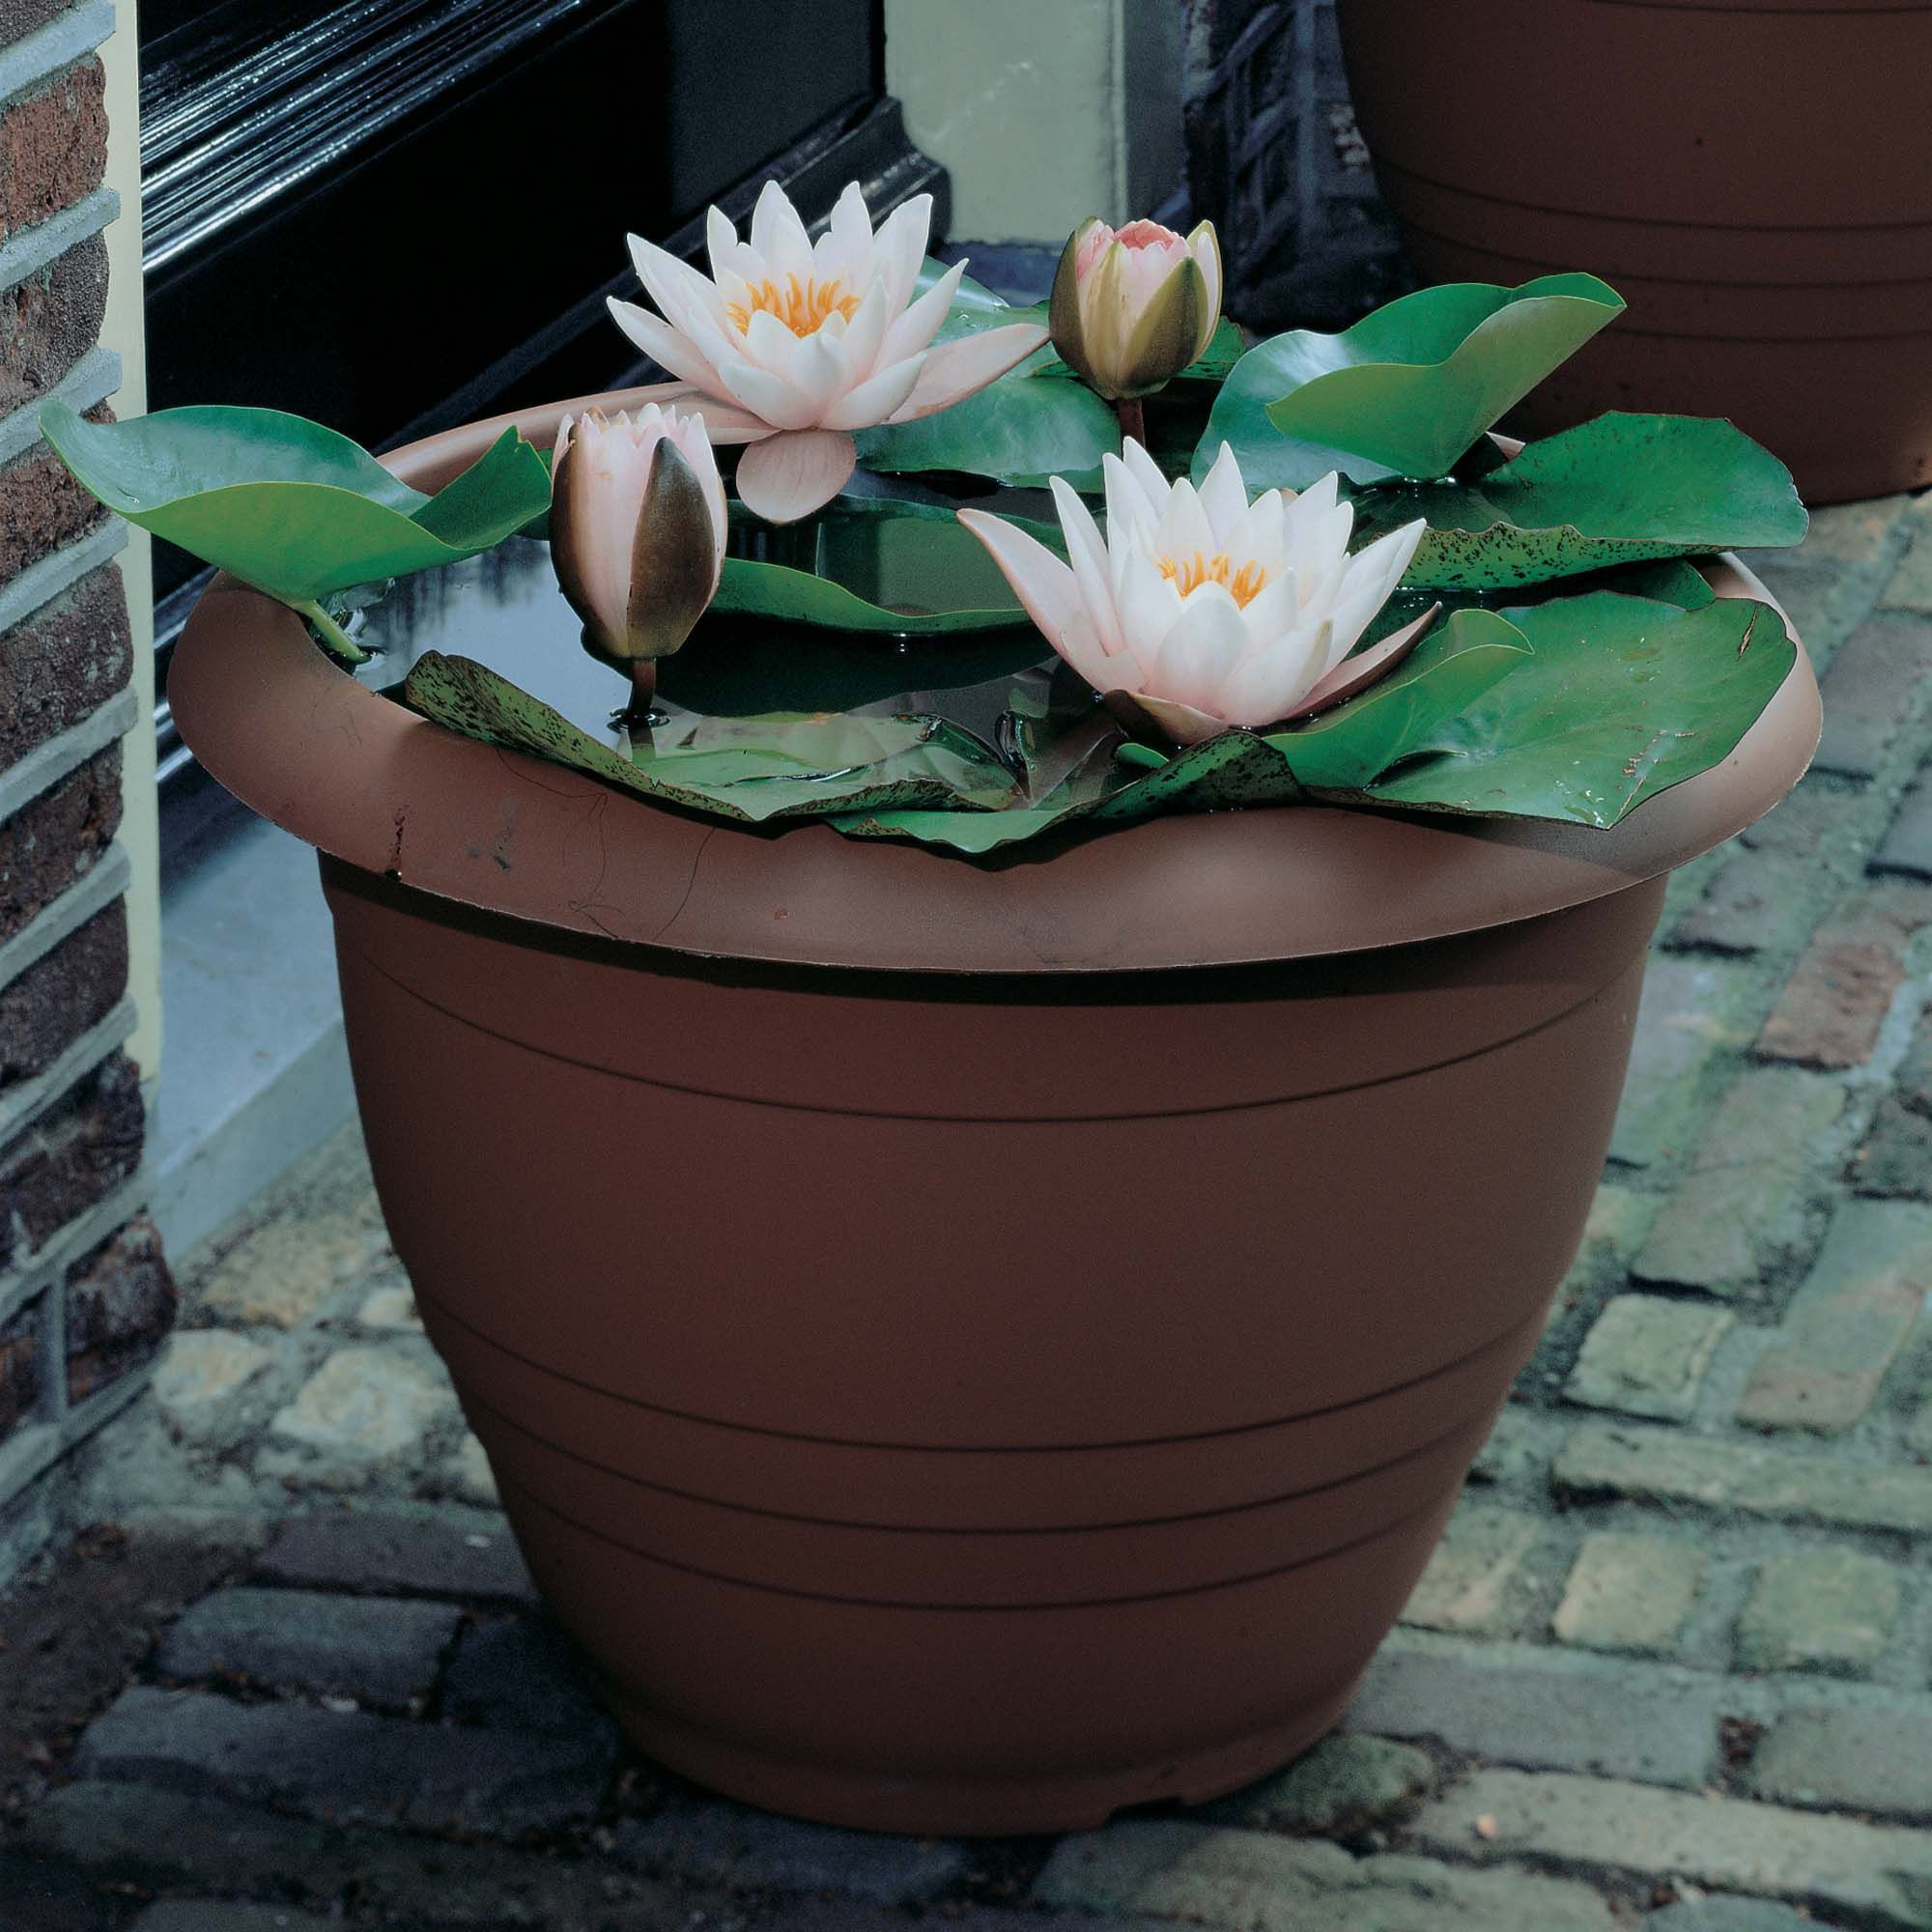 Cheap dollar store planters can be transformed into a haven for water lilies and lotus flowers Some are so cheap they don t have drain holes so they re